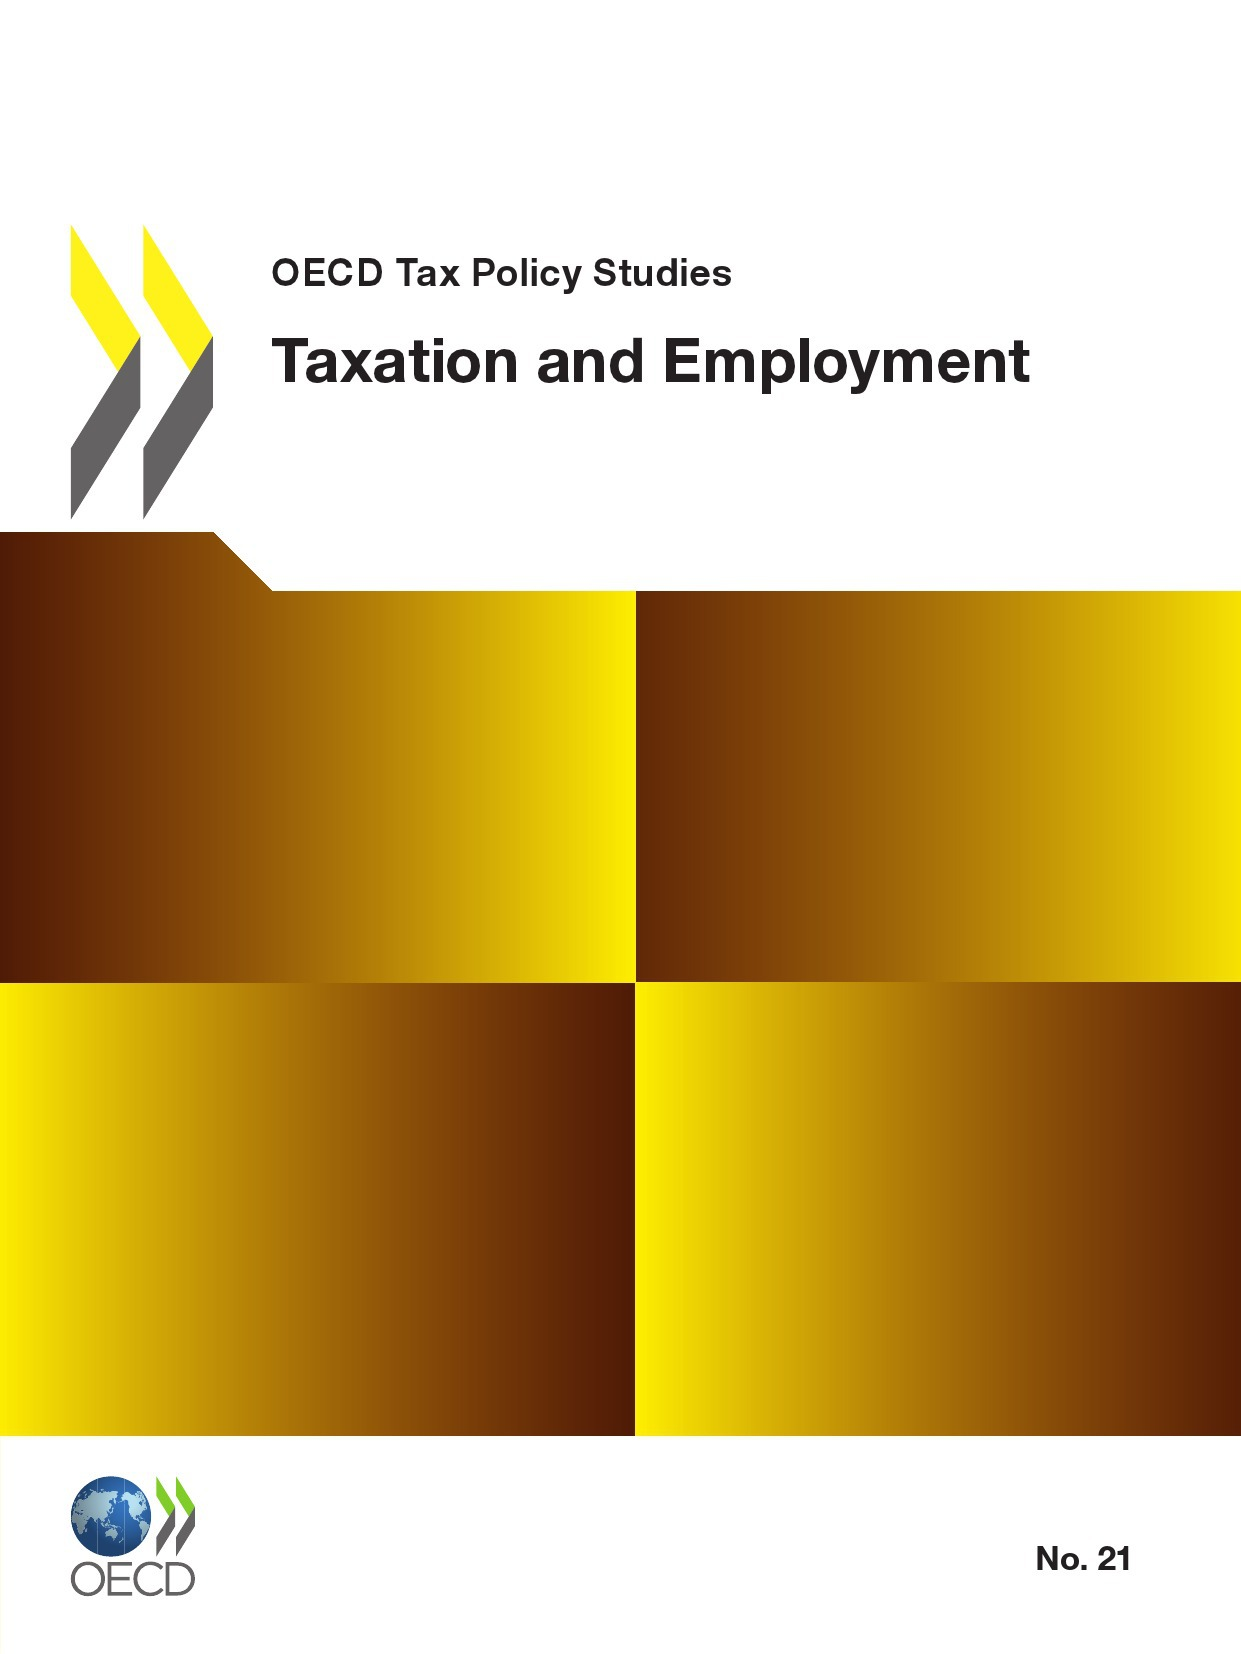 Collective Taxation and Employment